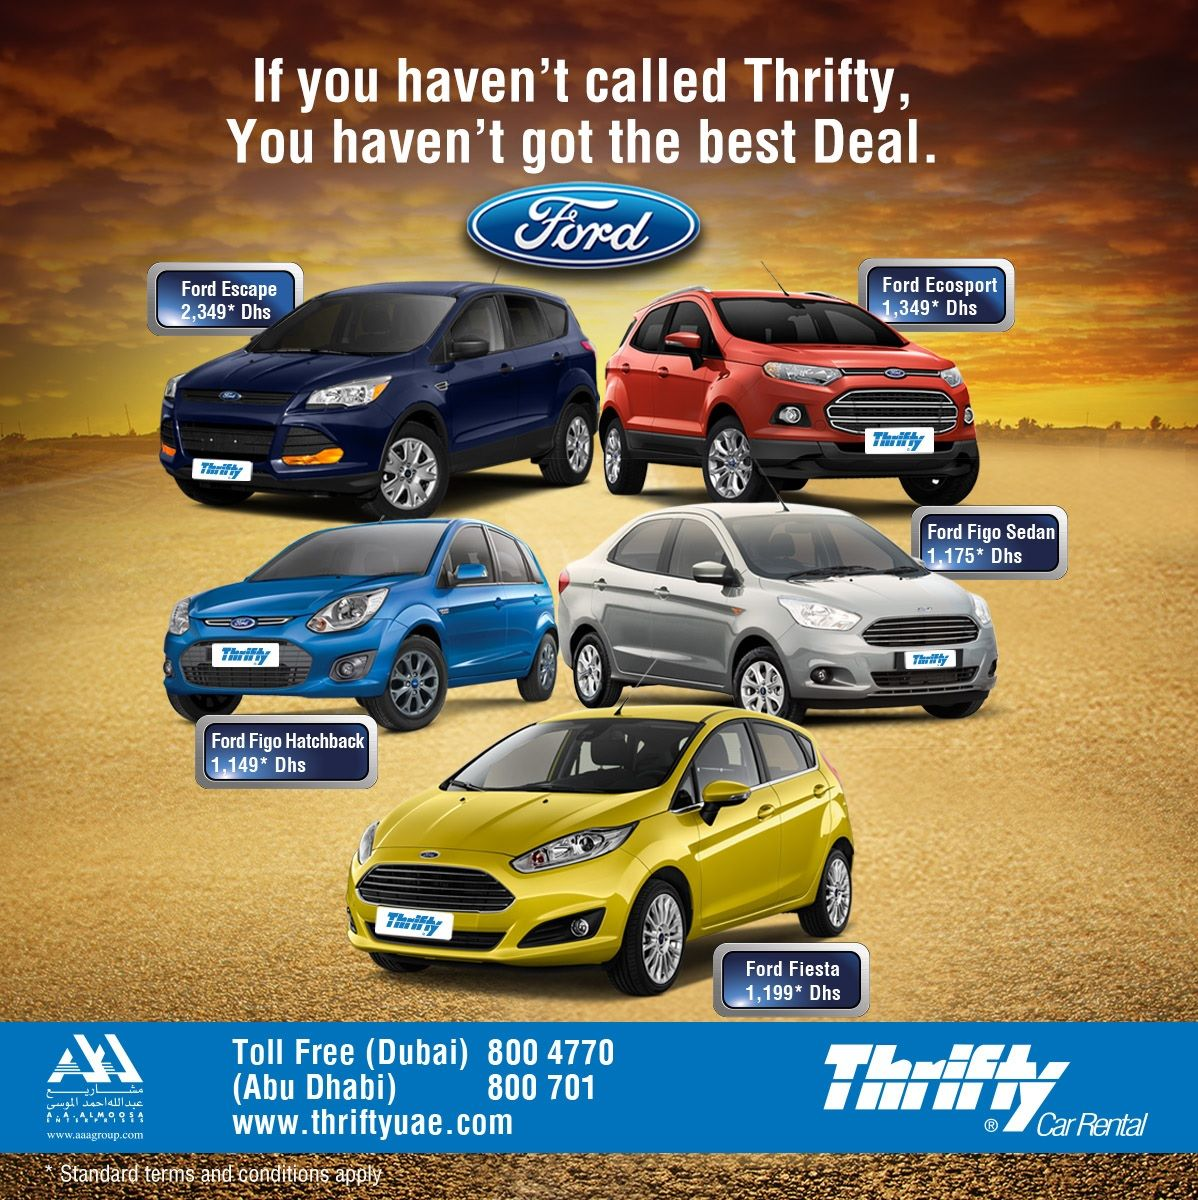 Introducing The Fantastic4 Now At Thriftyuae Ford Figo Ecosport Fiesta Escape Call Now To Know Ford Ecosport Hatchback Ford Escape